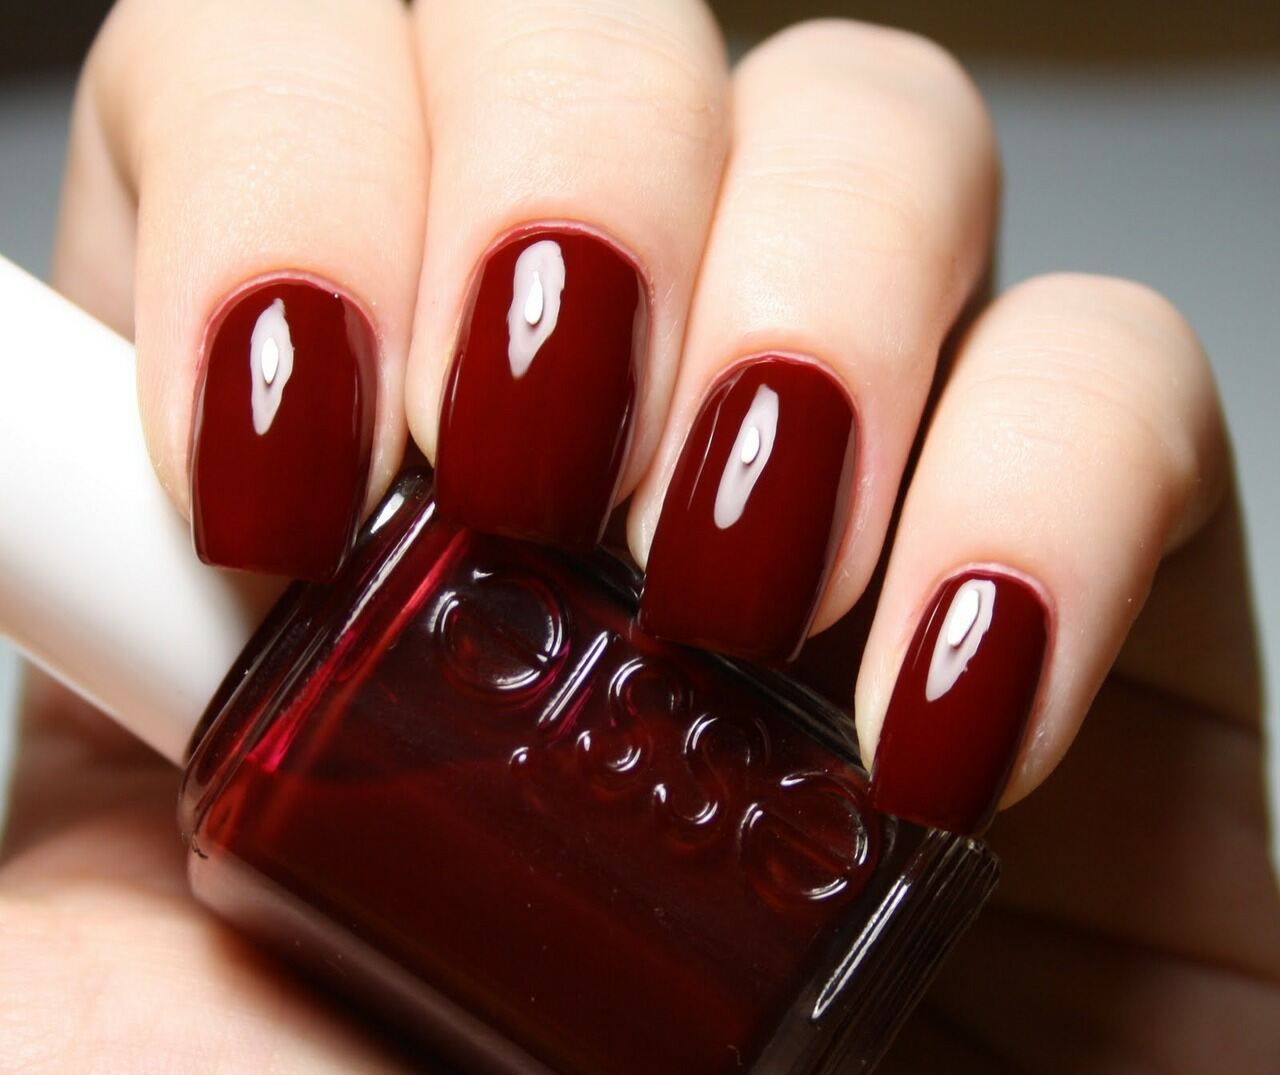 Essie Burgundy Dark Red Nail Colour Polish In Shearling Darling For Manicure Mw